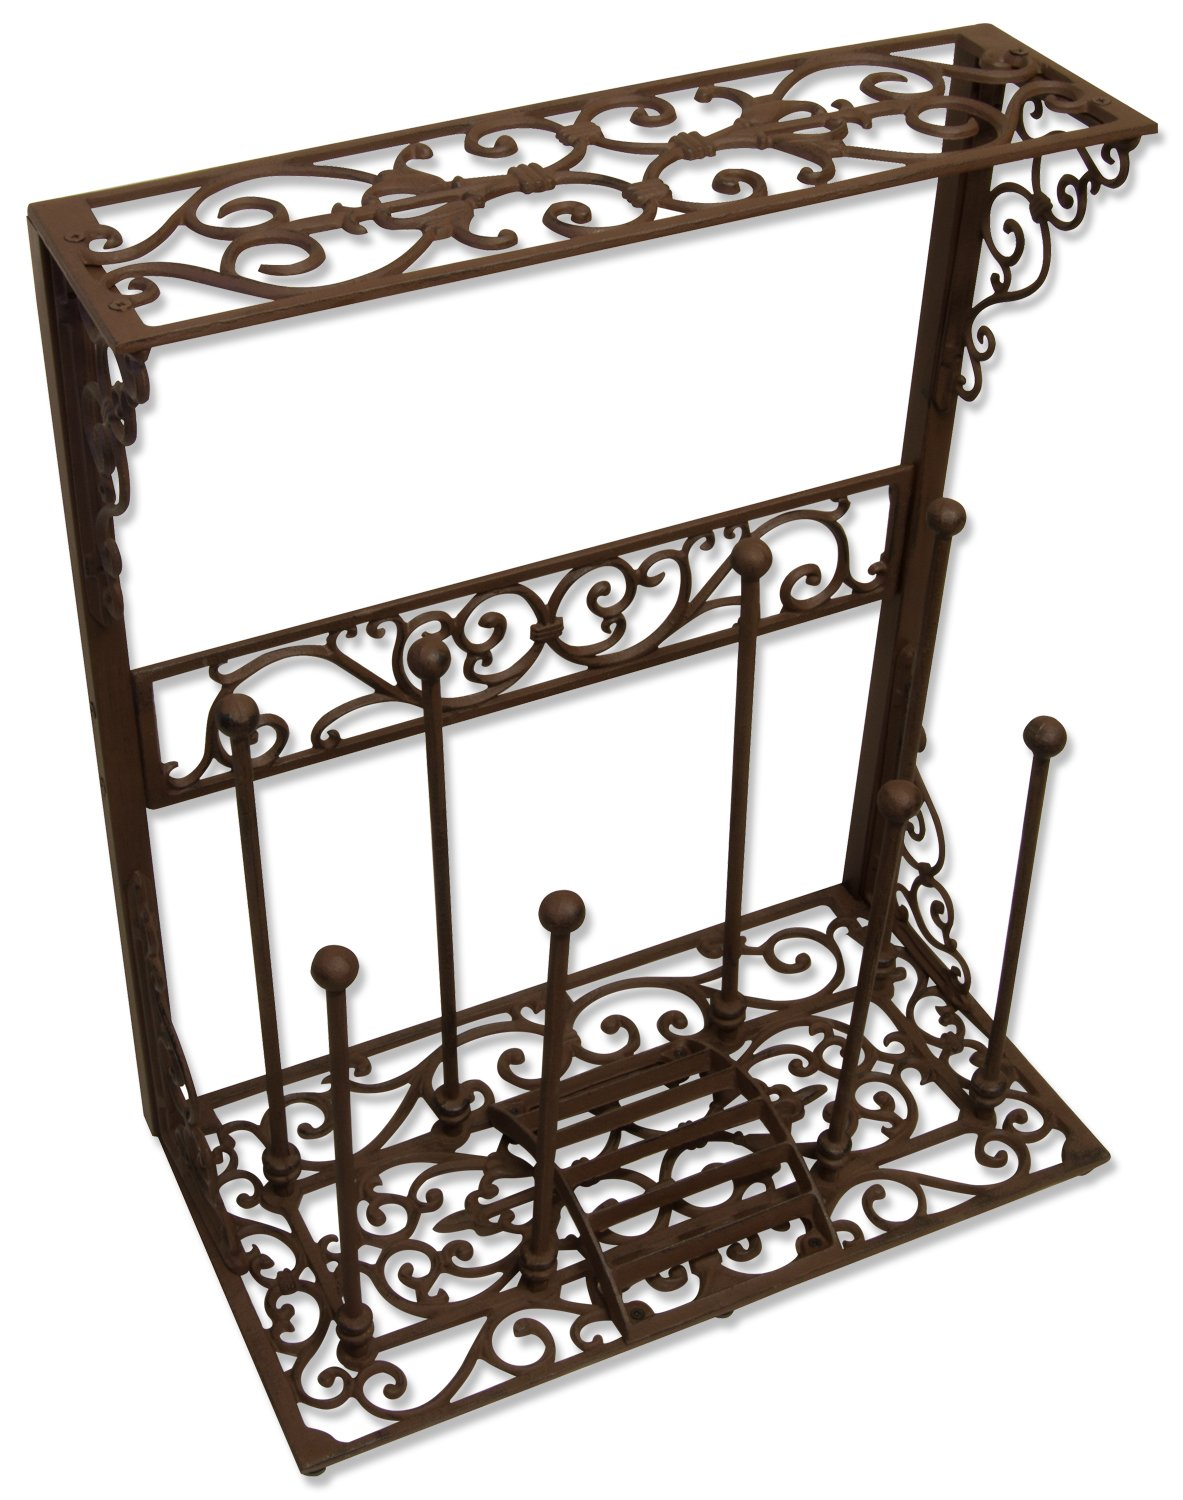 Woodside Cast Iron Boot Rack Organizer Storage Shoe Wellington Holder  Scraper: Amazon.co.uk: Garden U0026 Outdoors